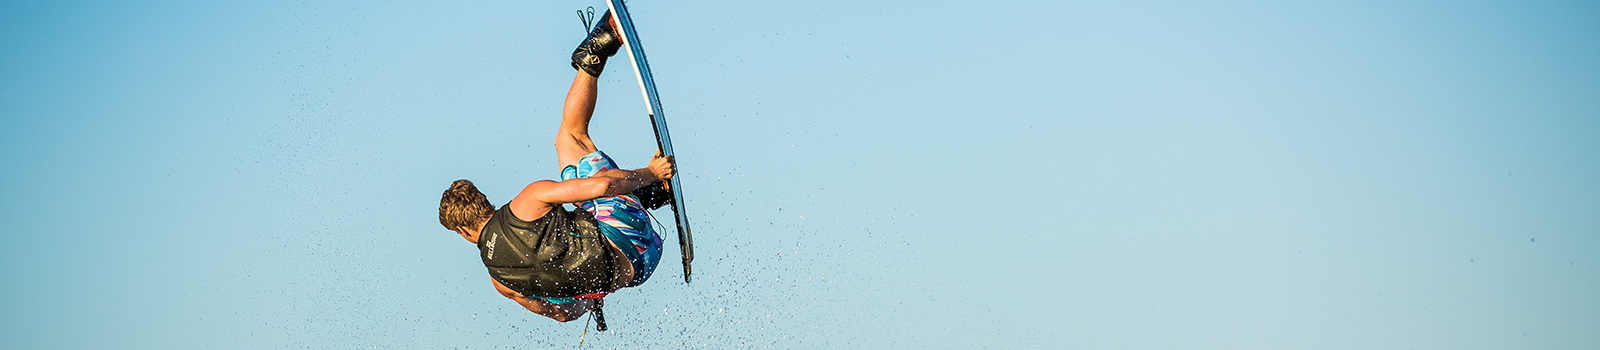 Tops Wakeboard